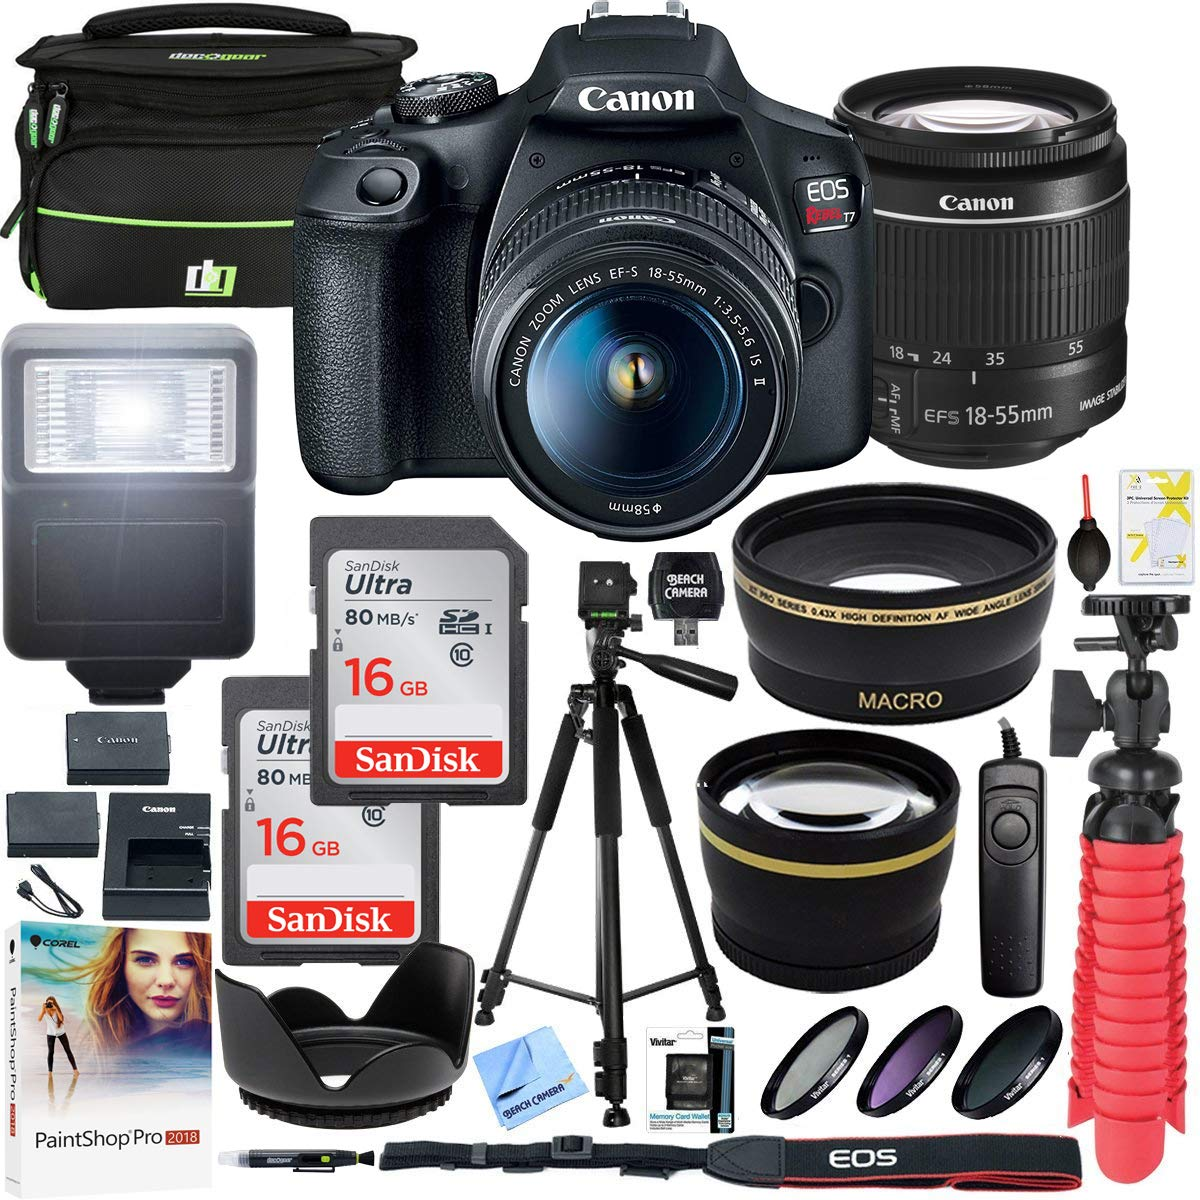 Canon EOS Rebel T7 DSLR Camera with EF-S 18-55mm f/3.5-5.6 is II Lens and Two (2) 16GB SDHC Memory Cards Plus Double Battery Tripod Cleaning Kit Accessory Bundle